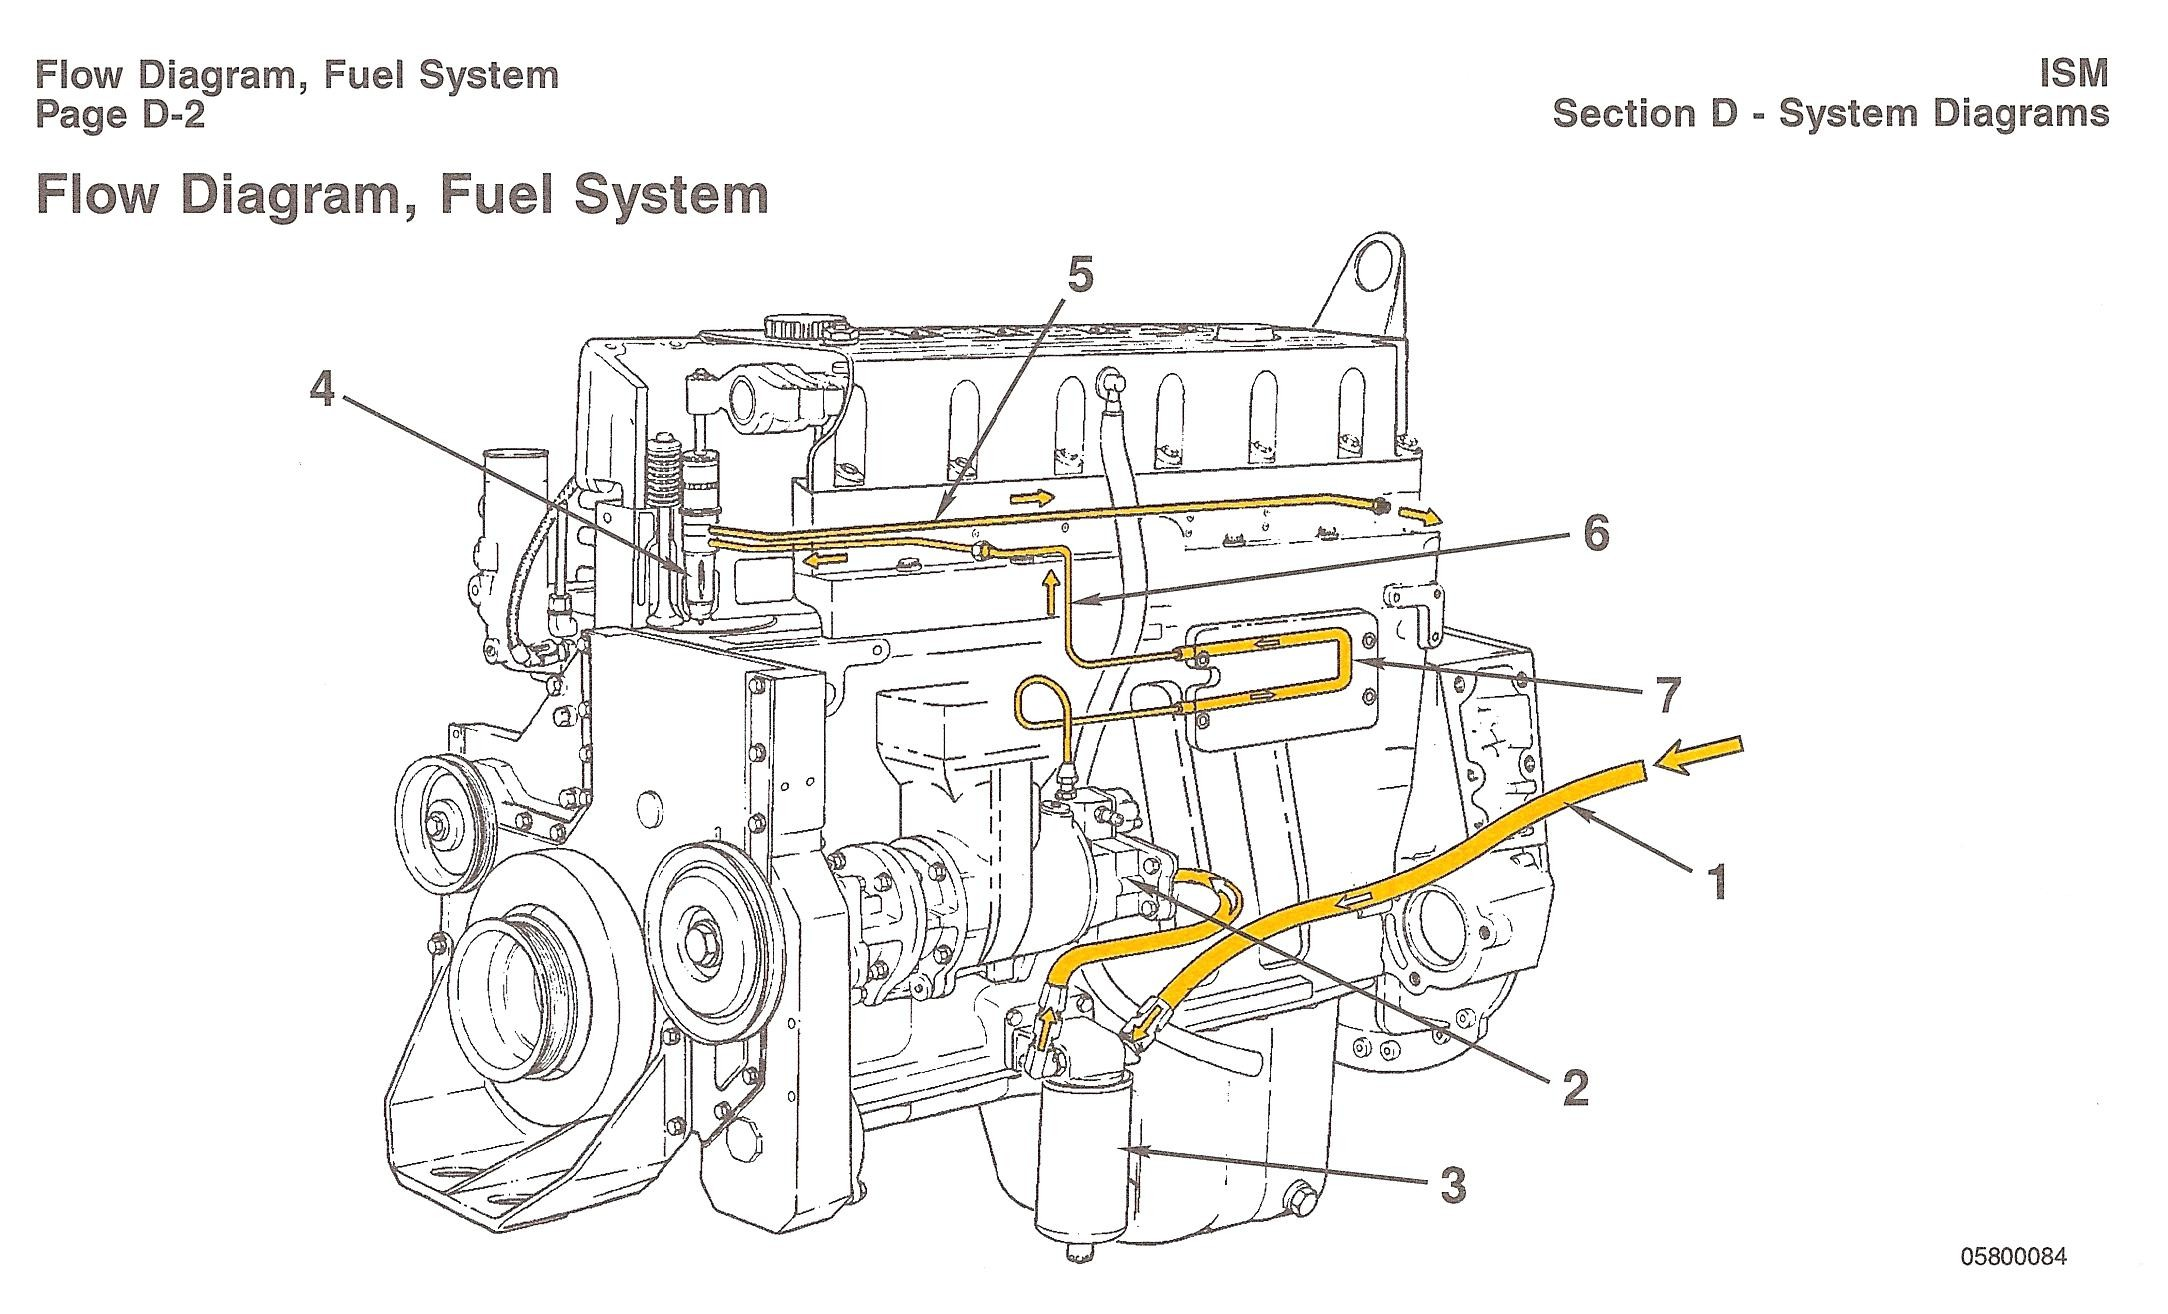 raw 4 toyota engine diagram mt 6531  cummins isx wiring diagram free diagram  mt 6531  cummins isx wiring diagram